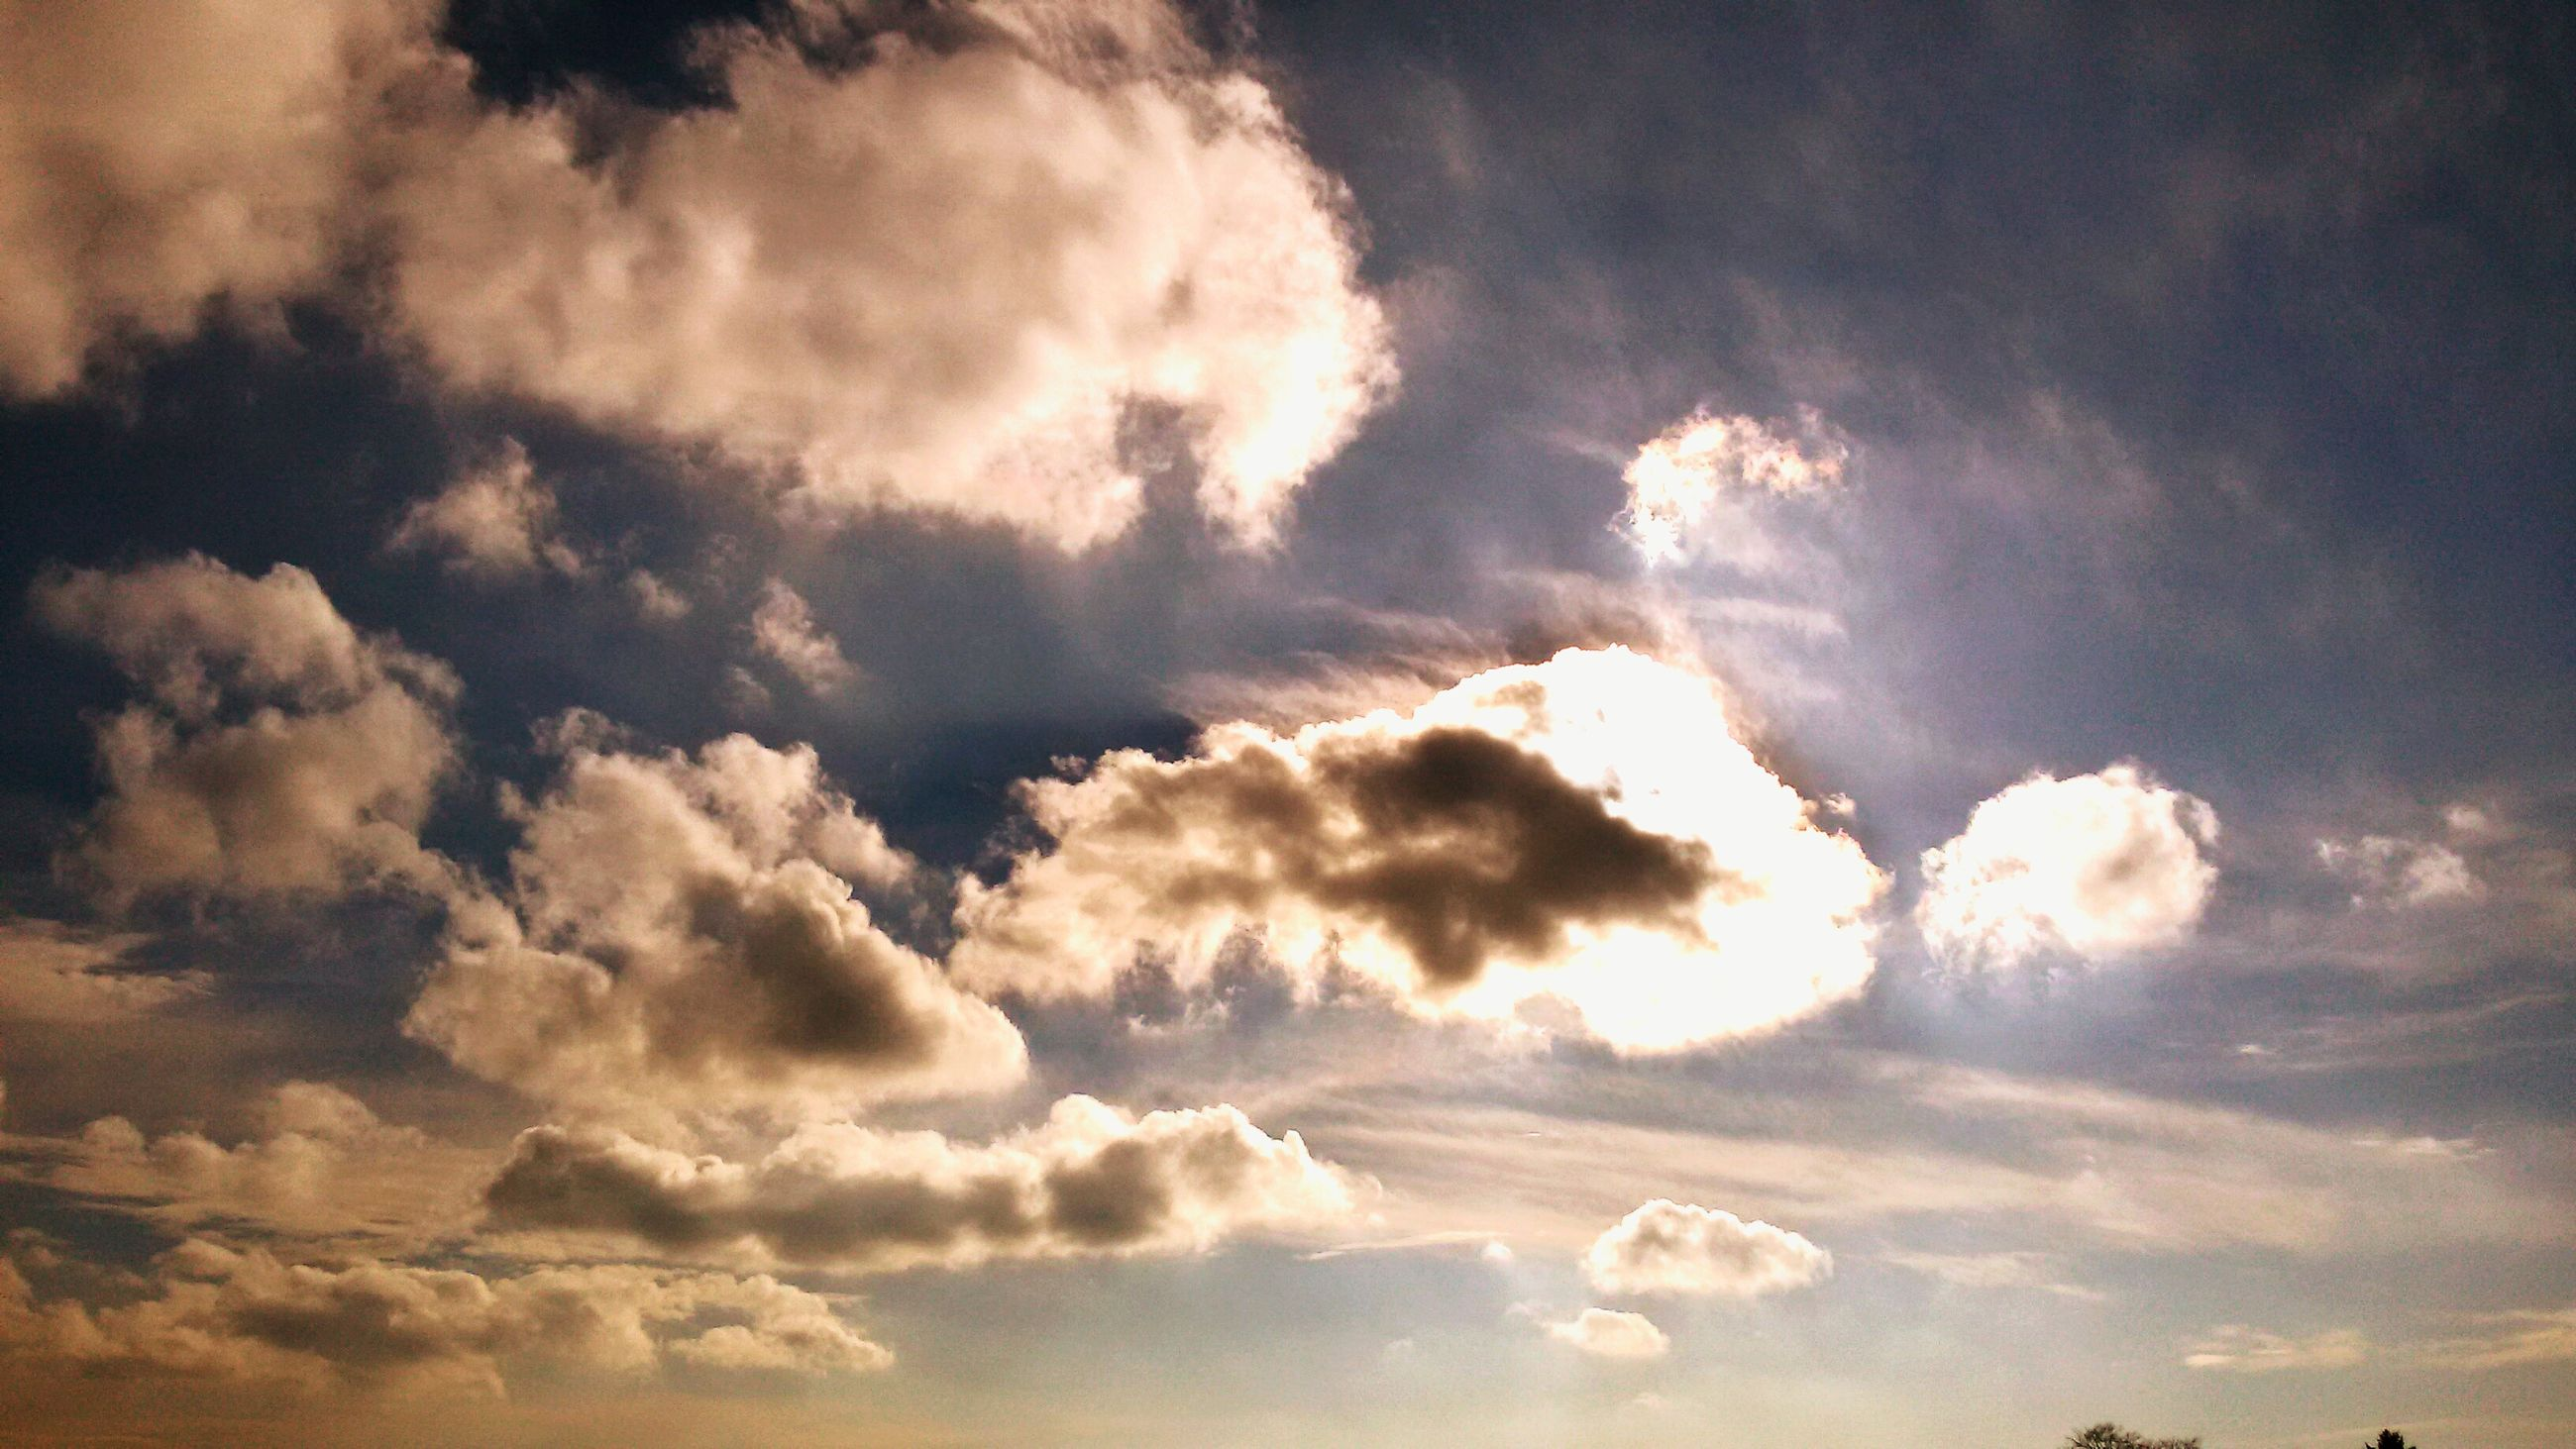 sky, cloud - sky, low angle view, sky only, beauty in nature, scenics, tranquility, cloudy, tranquil scene, cloudscape, nature, cloud, backgrounds, weather, idyllic, majestic, sunset, full frame, dramatic sky, overcast